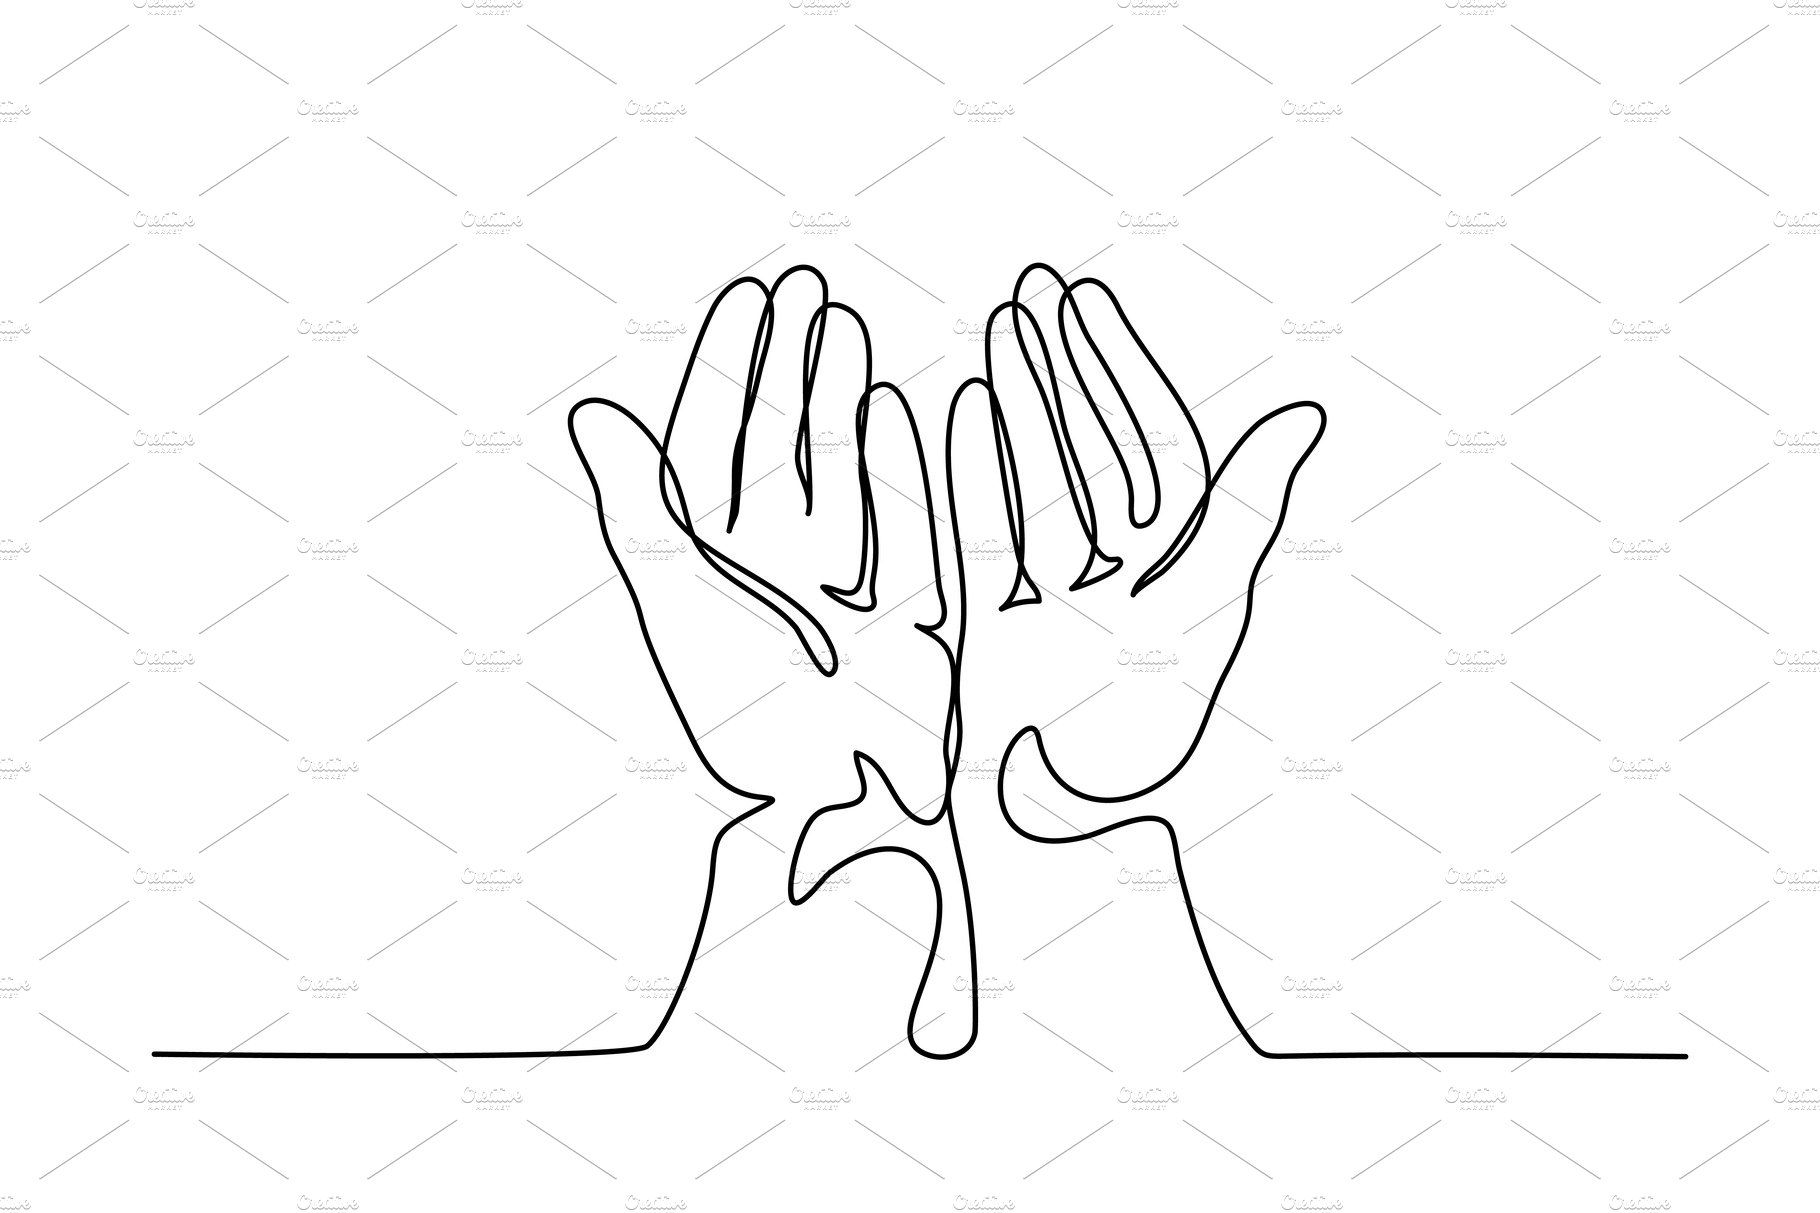 Hands Palms Together Praying Praying Hands Drawing Hand Illustration Line Art Drawings